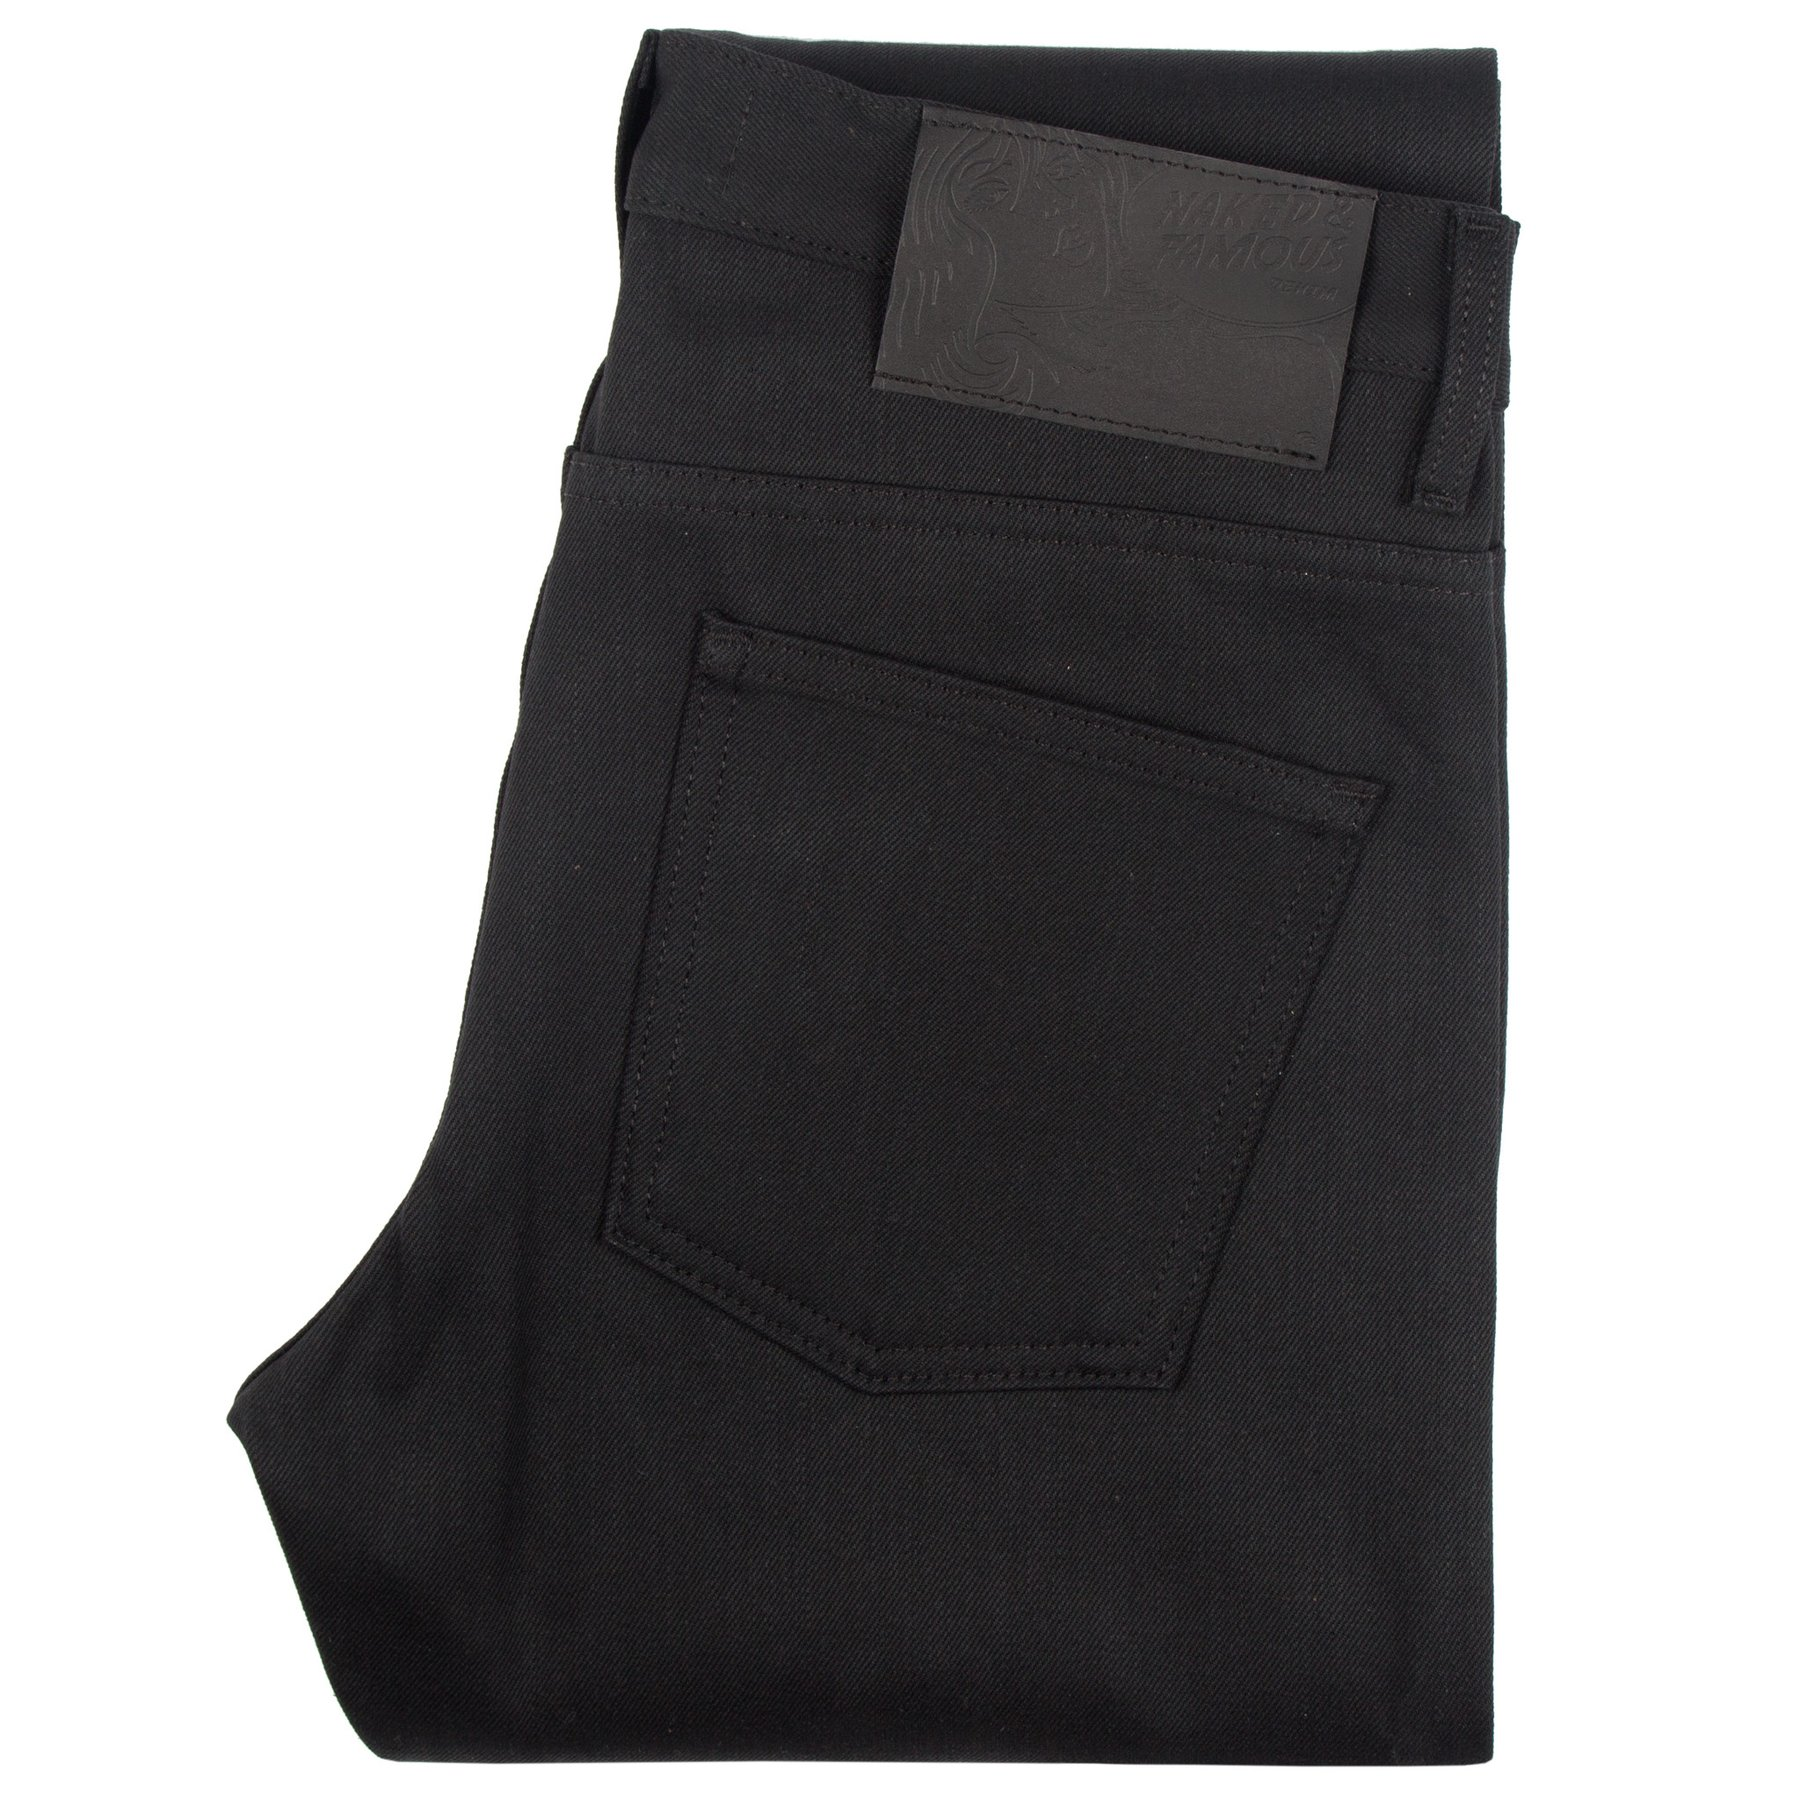 solid black selvedge - Super Guy / Weird Guy / Easy Guy / Strong Guy